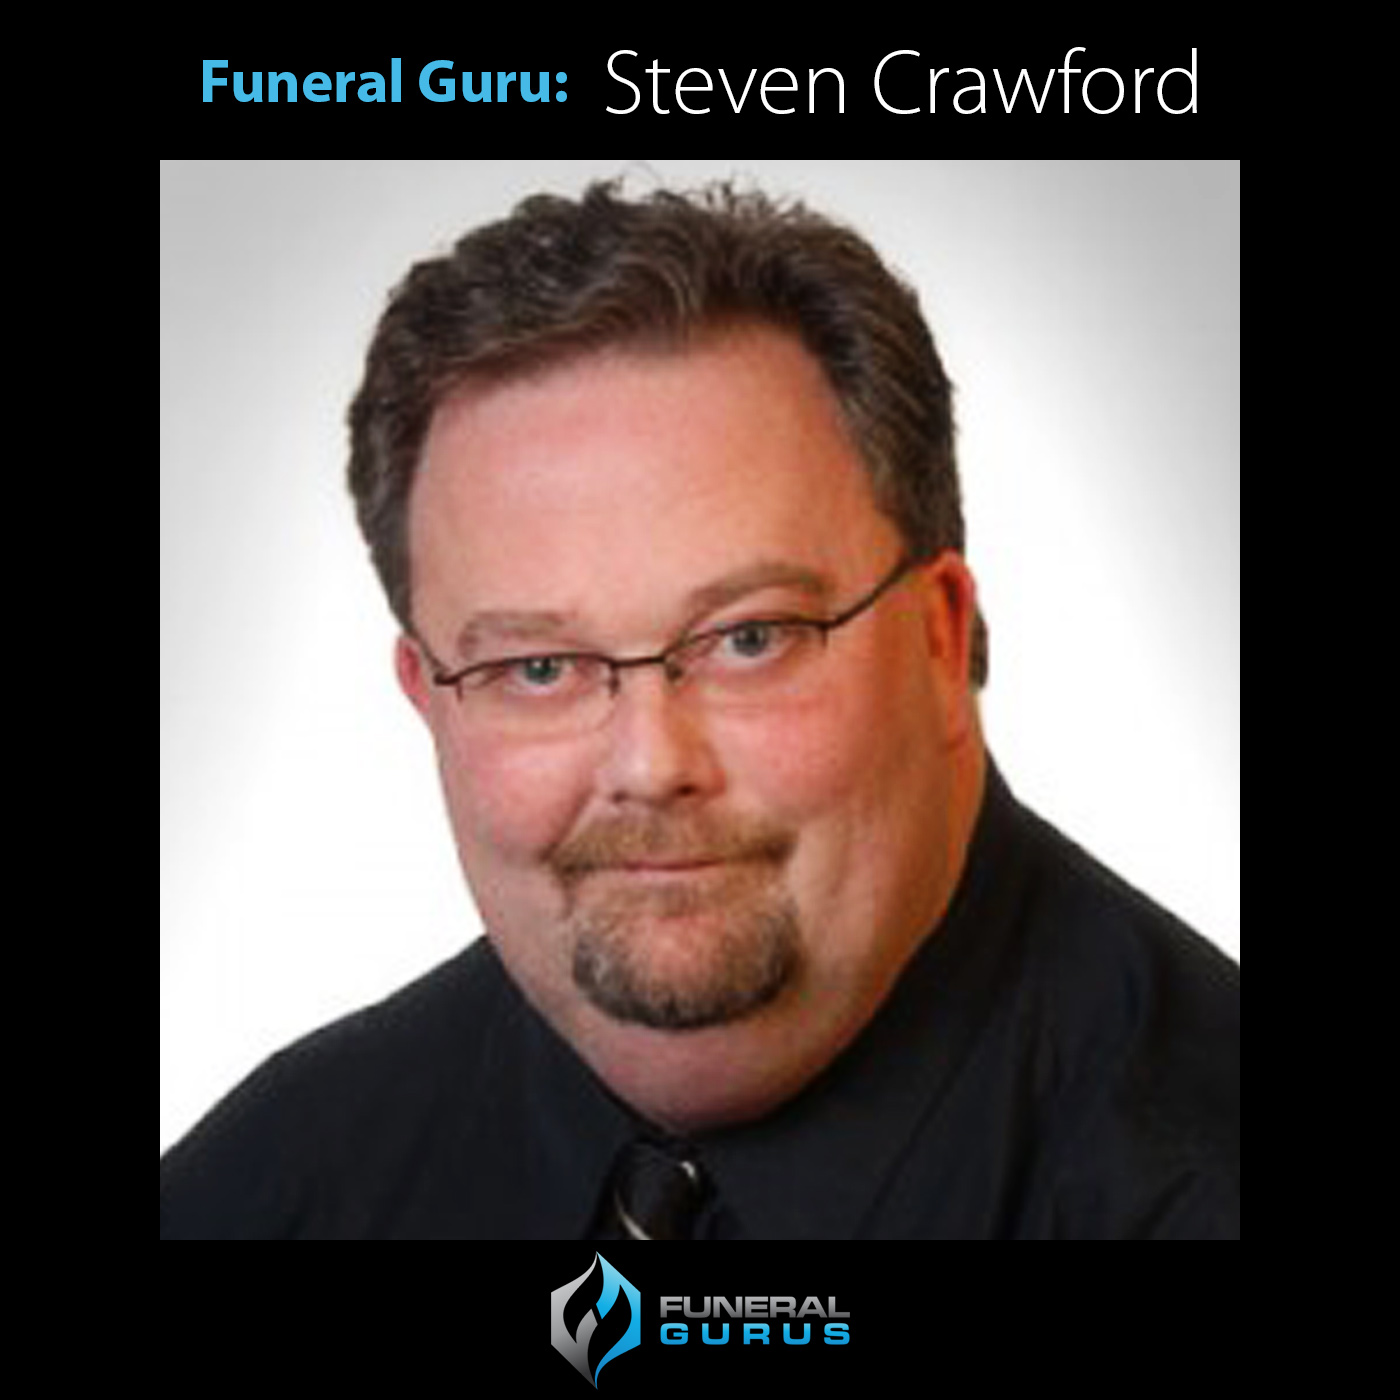 Funeral Showcase: Steven Crawford of Directors' Choice